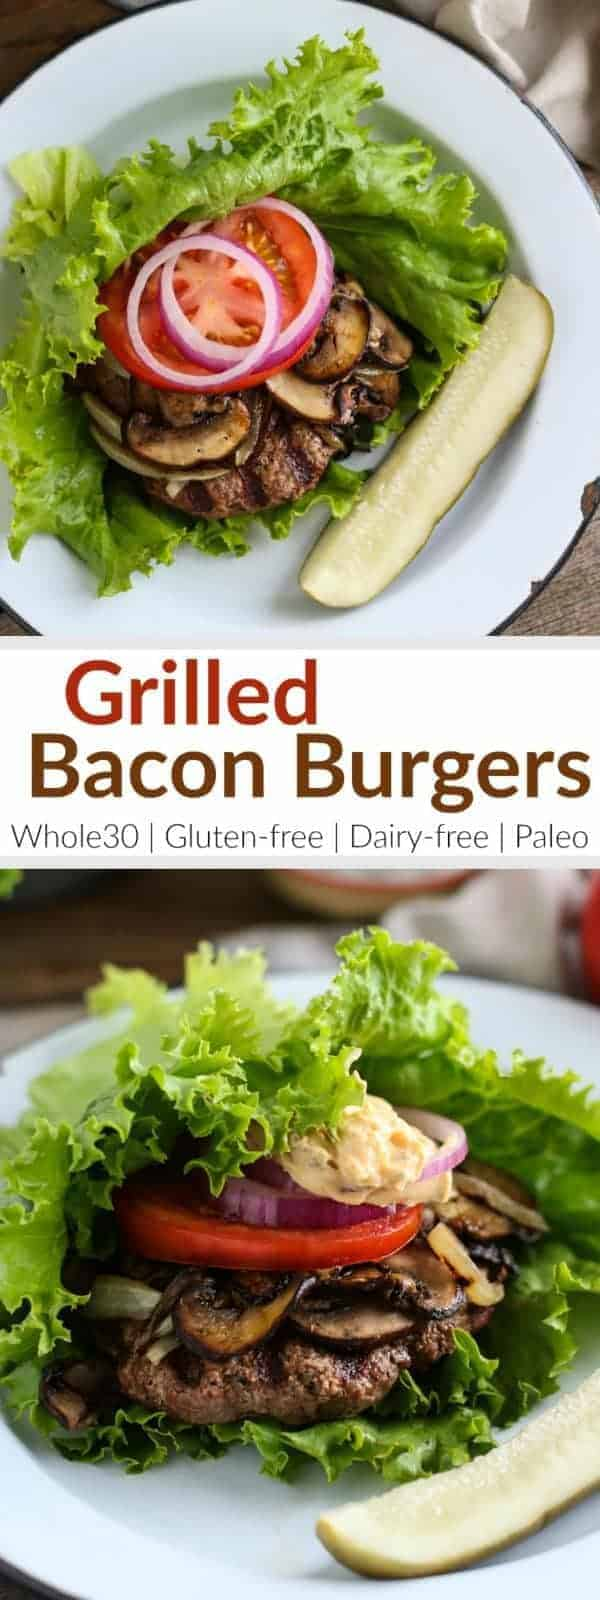 Pinterest image for Grilled Bacon Burgers